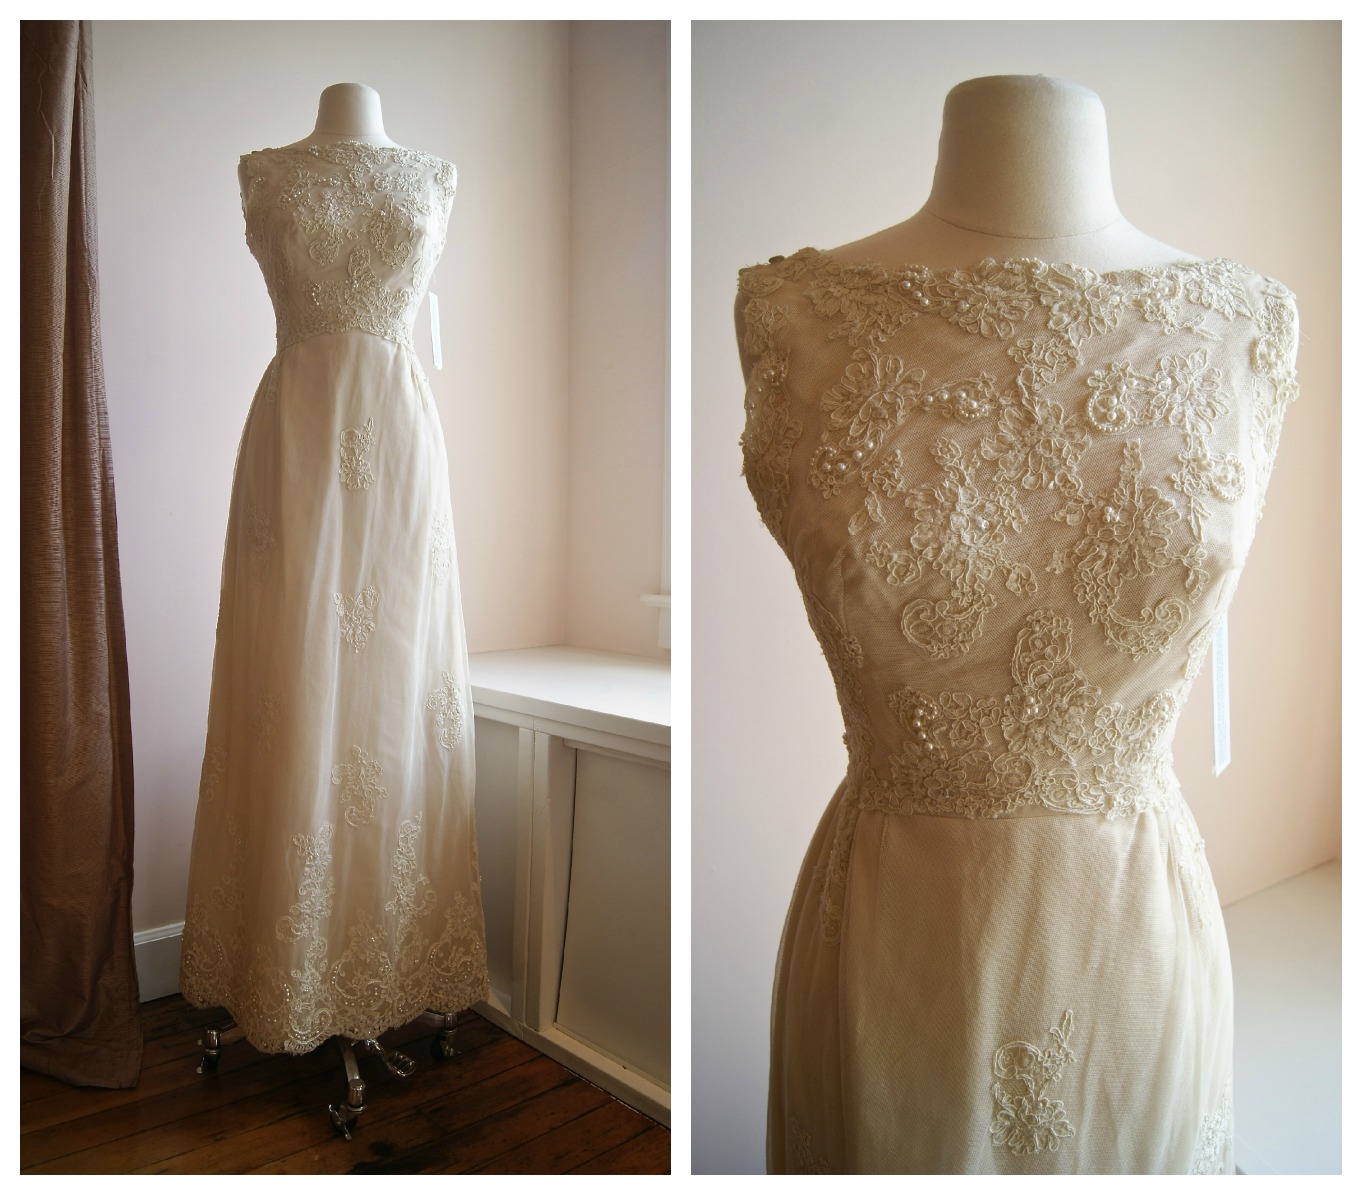 Xtabay Vintage Clothing Boutique - Portland, Oregon: Love is in the ...